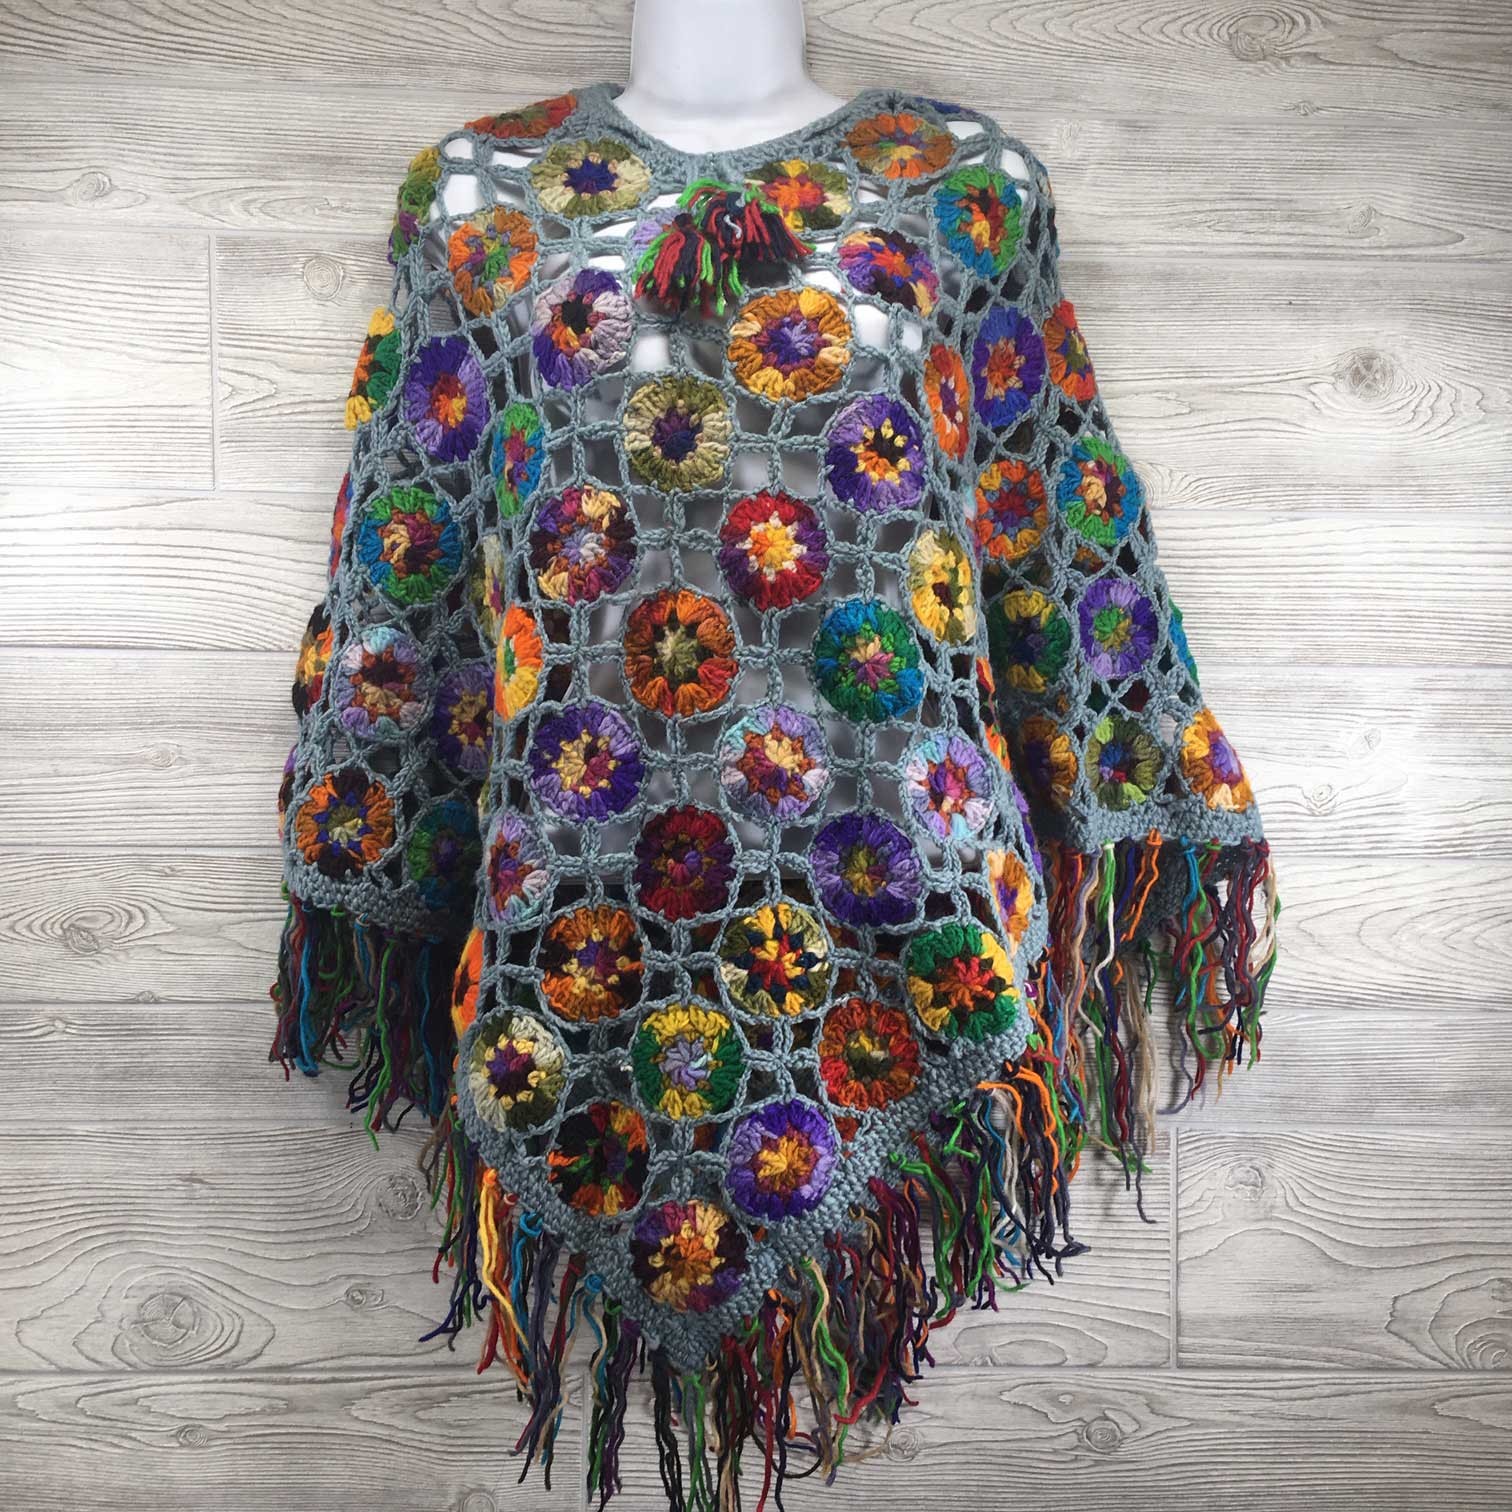 Women's Crochet Granny Square Boho Wool Poncho with Fringes - One Size Fits Most - Multicolored Blue